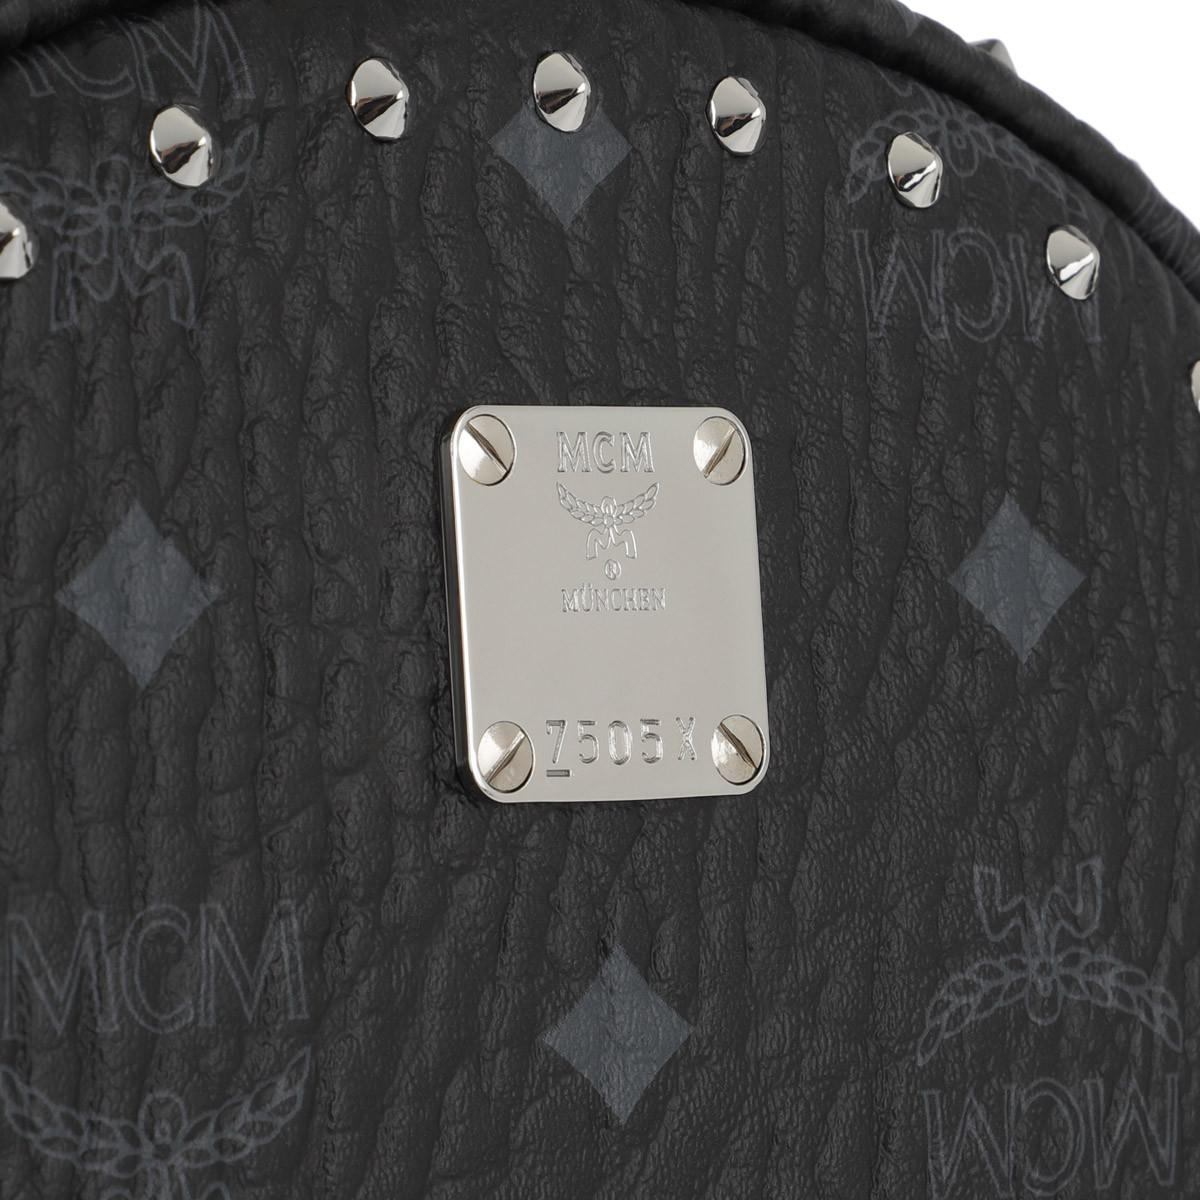 fcdbe9db5acaac MCM Stark Outline Studs Convertible Visetos Backpack in Black - Save 19% -  Lyst